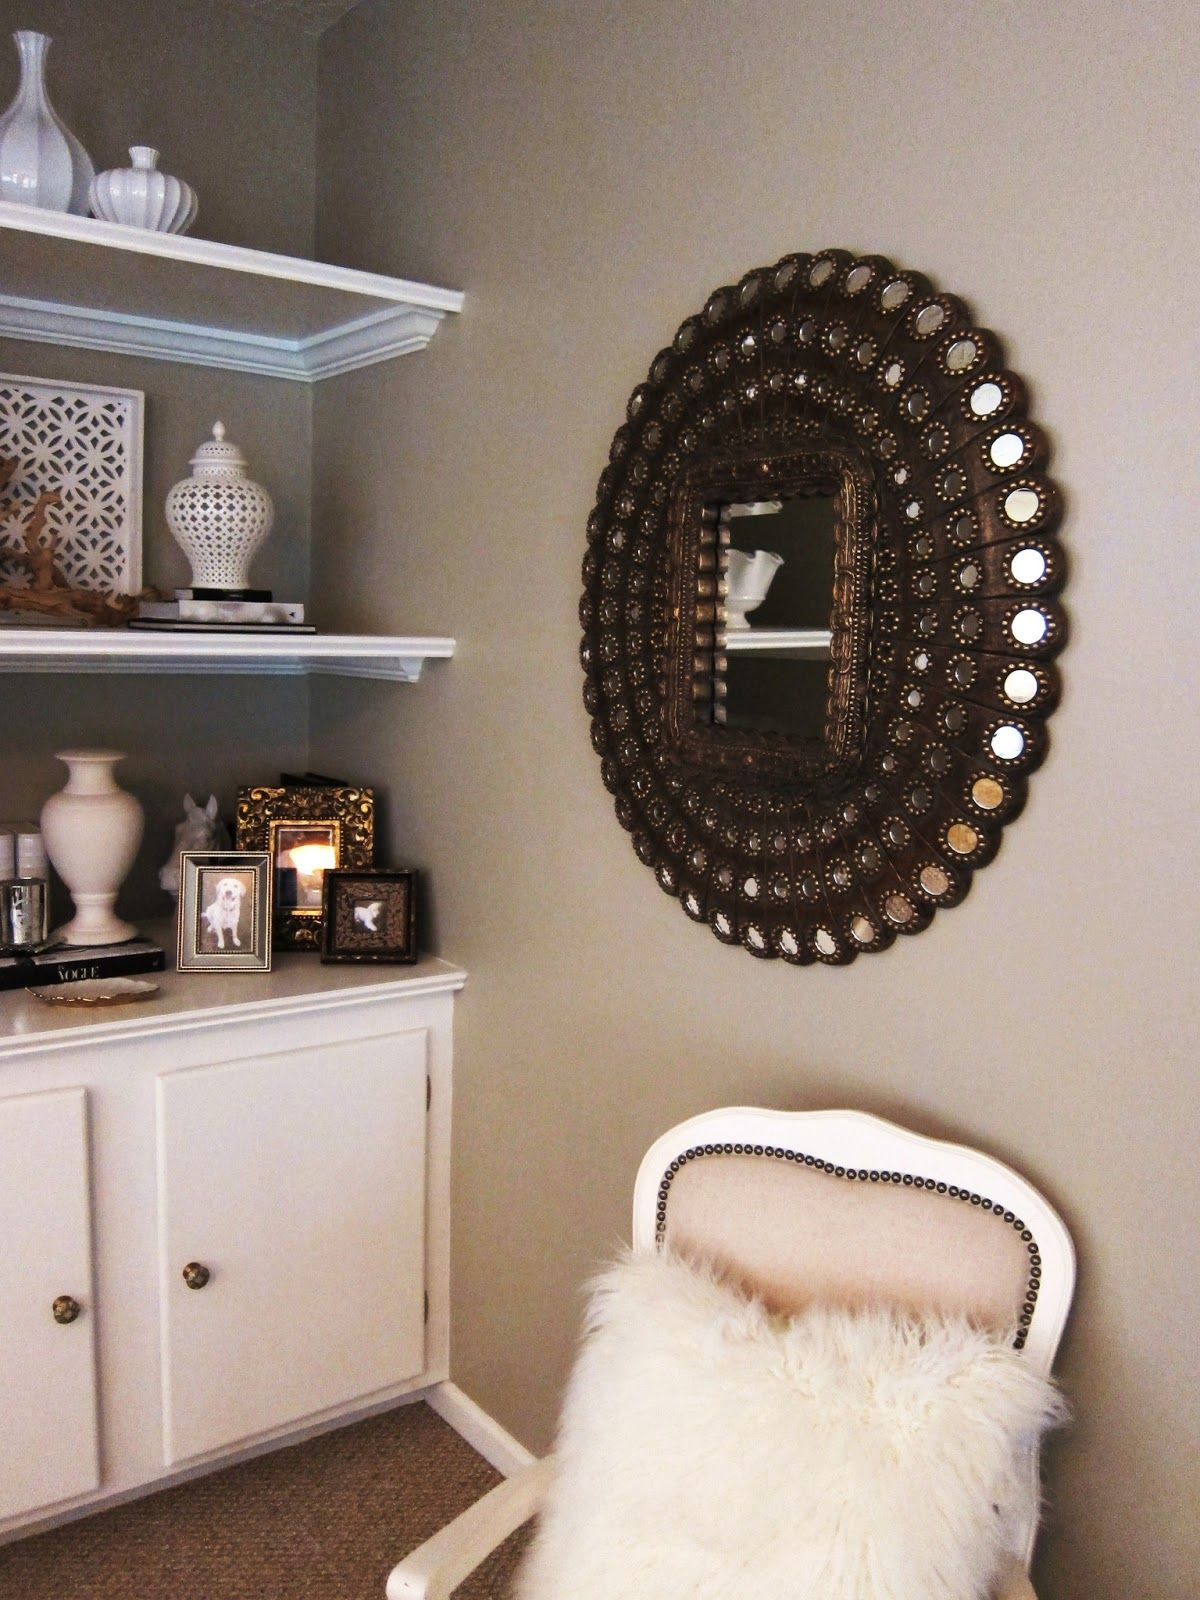 Pier 1 home decor mirrors wall default sc and tasty home pier 1 home decor mirrors wall default sc and tasty home decoration framed leather mirror amipublicfo Gallery